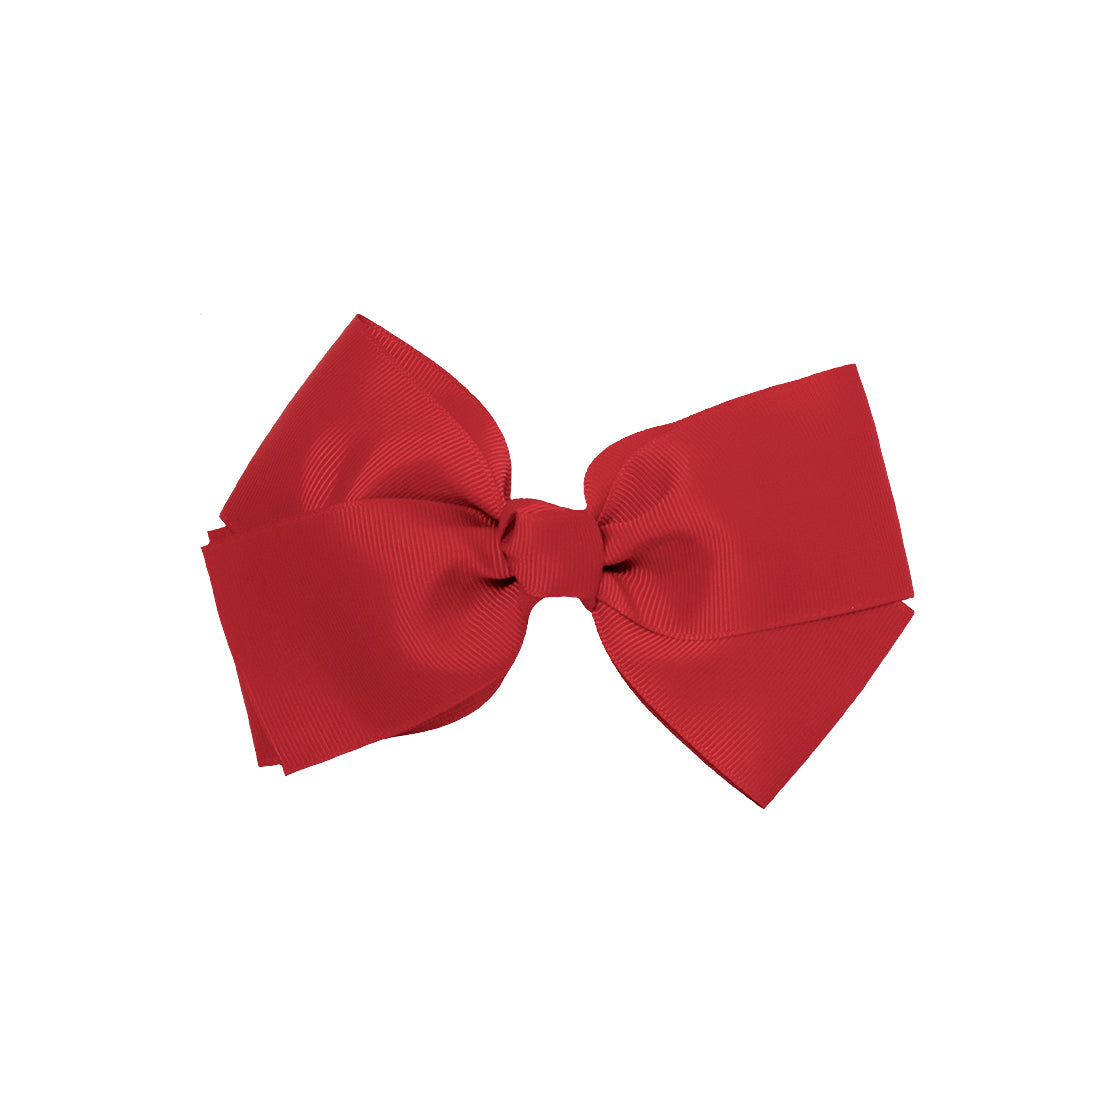 LiveGreek™ Mia® Spirit - Bow Barrette - red color - #MiaKaminski #Mia #MiaBeauty #beauty #hair #lovethis #love #life #woman #HairAccessories #bow #barrette #cheer #dance